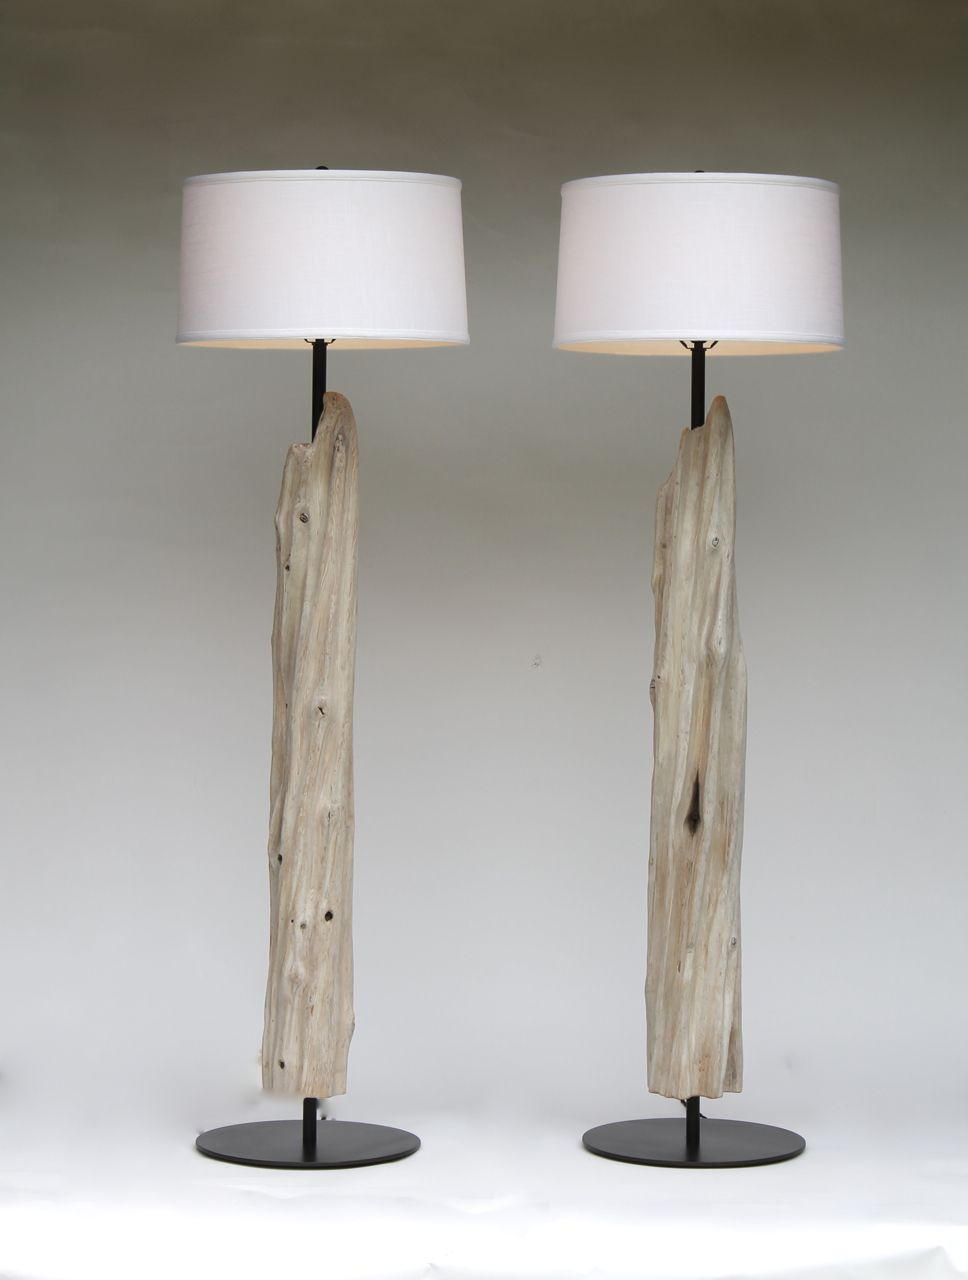 lights transitional standard lighting big driftwood elegant picture lamps tall table floor lamp silver brown standing cheap branch cylinder shop set of